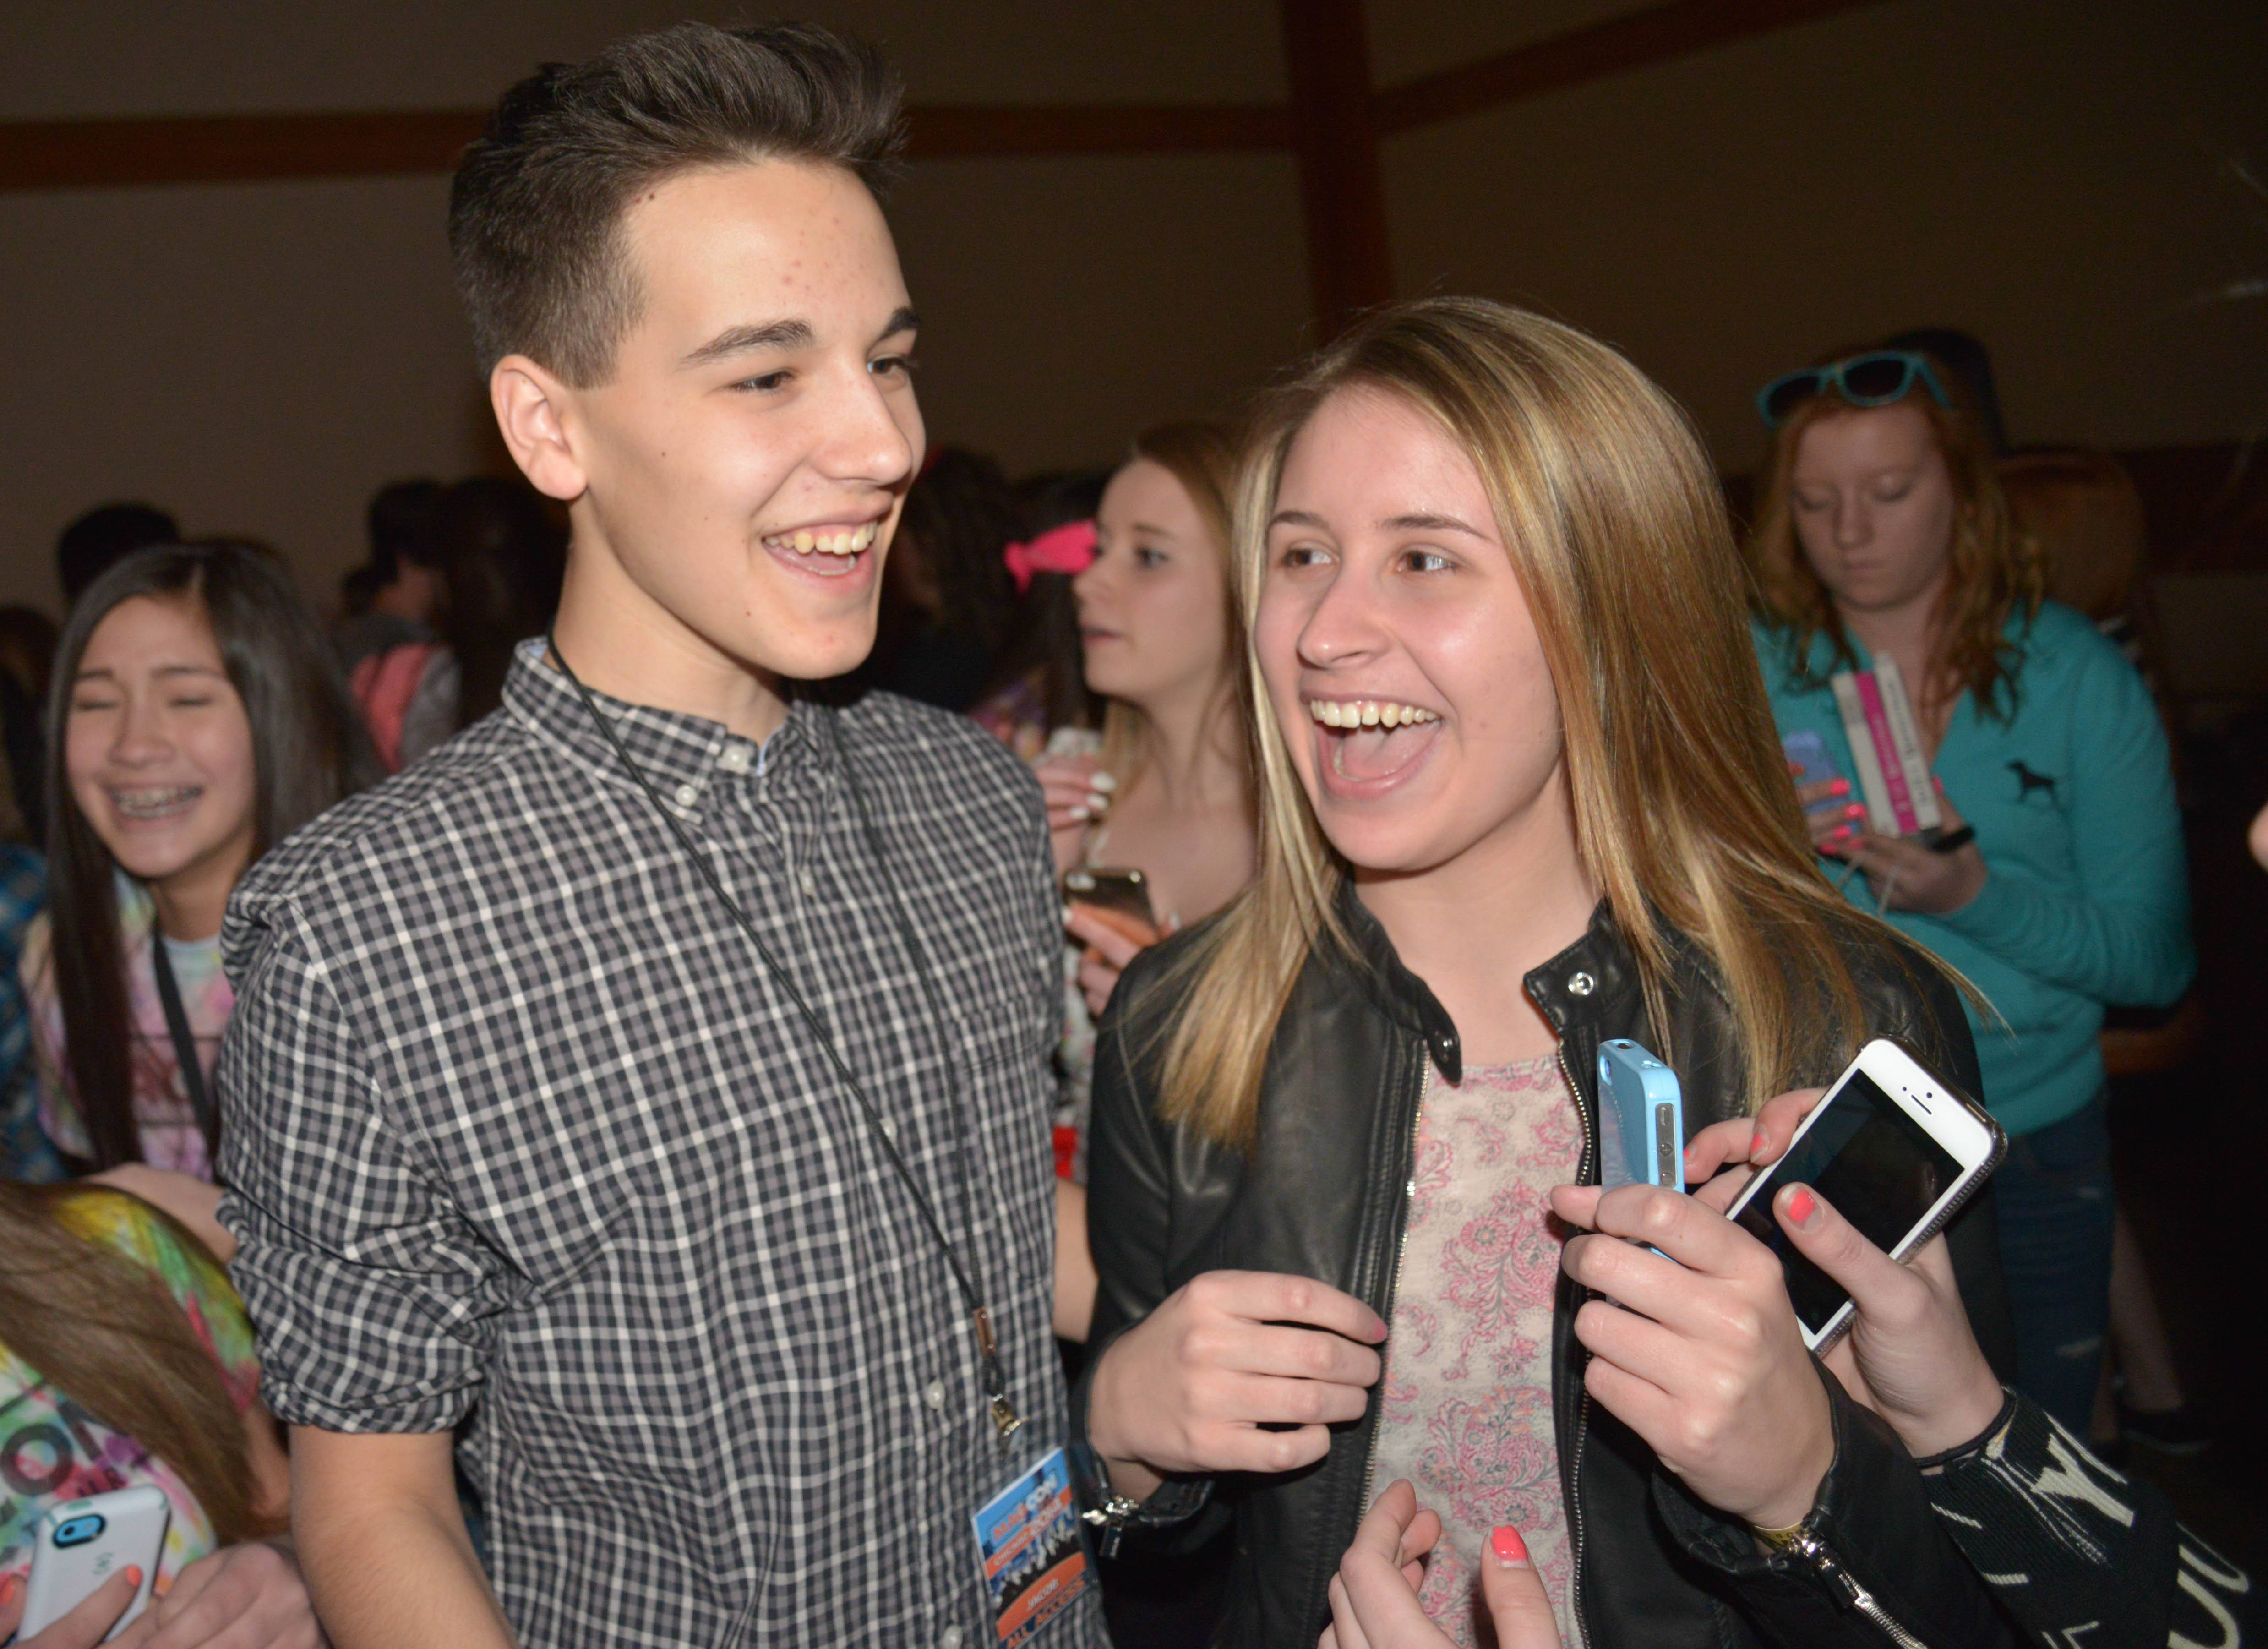 Cameron Dallas, left, takes some time to chat with Rylee Reed, 16, of Chesterton, Ind., at MAGCON in Itasca Saturday.